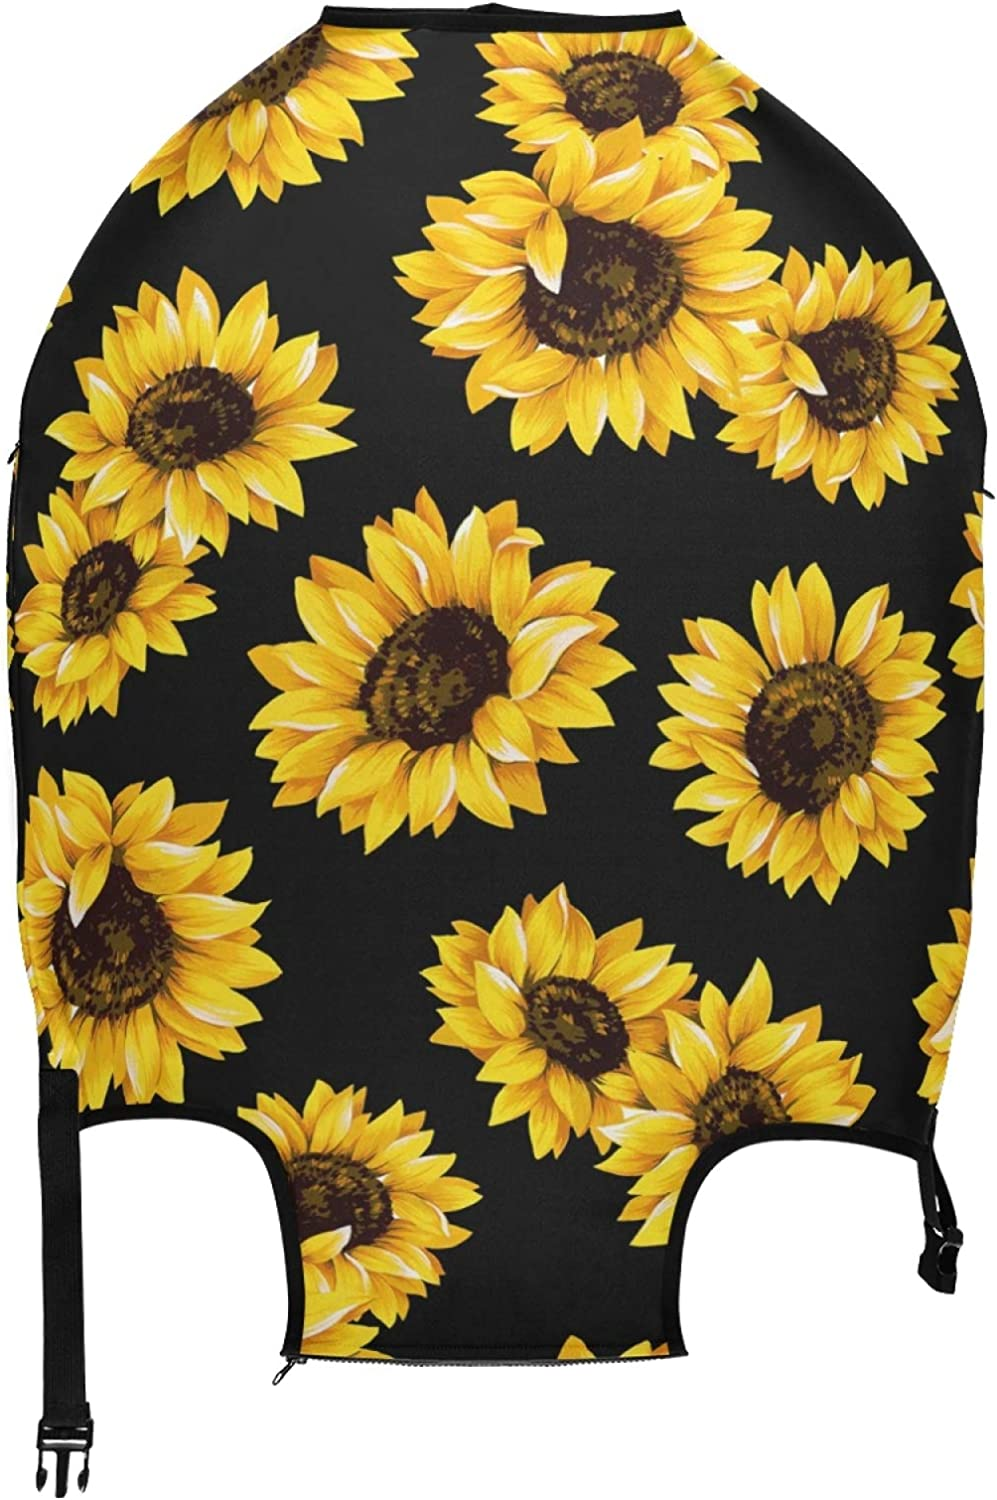 ALAZA Lovely Sunflower Luggage Travel Protec New product! New type Case Cover online shop Suitcase